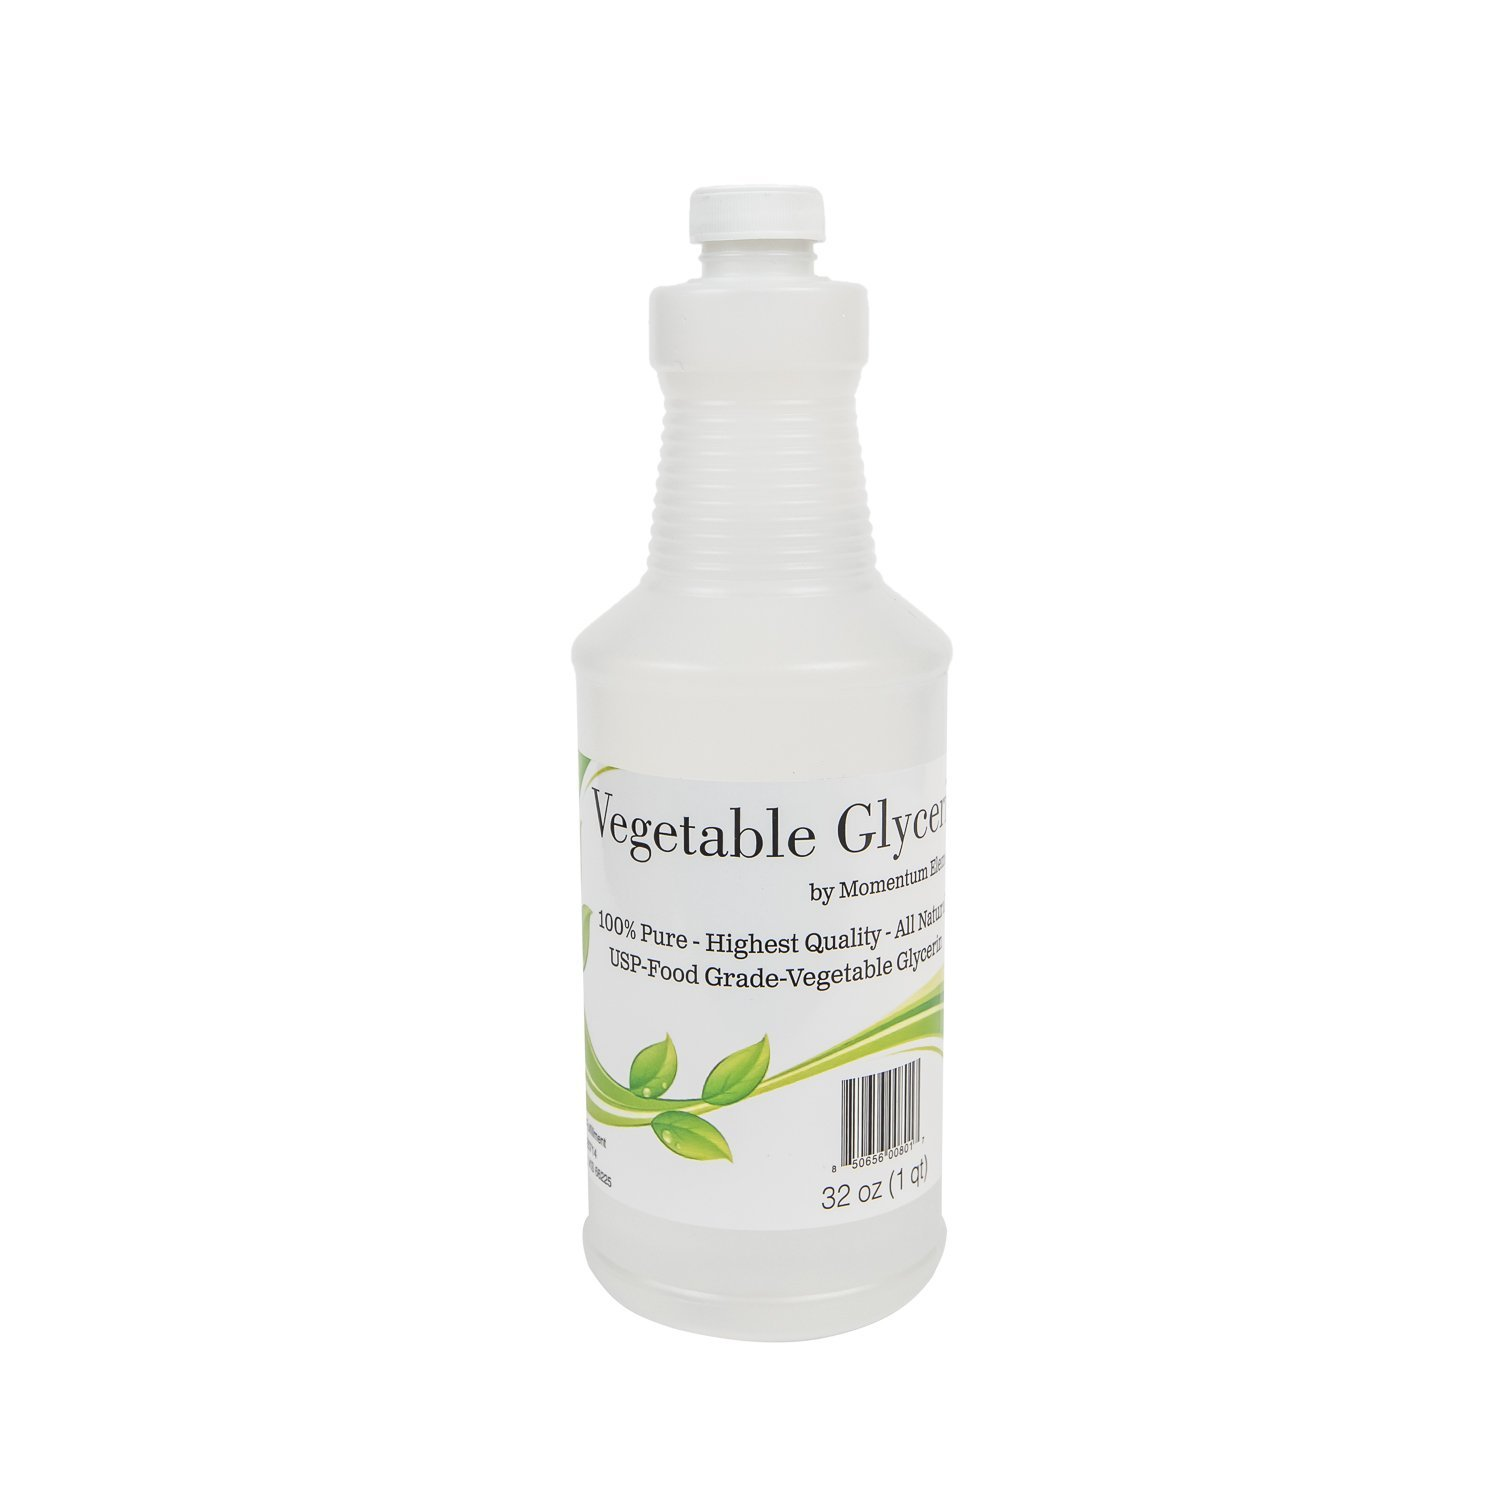 Vegetable Glycerin 99.8% Pure - 1 Quart (32 oz) USP Food Grade All Natural Premium Quality and Made in the USA